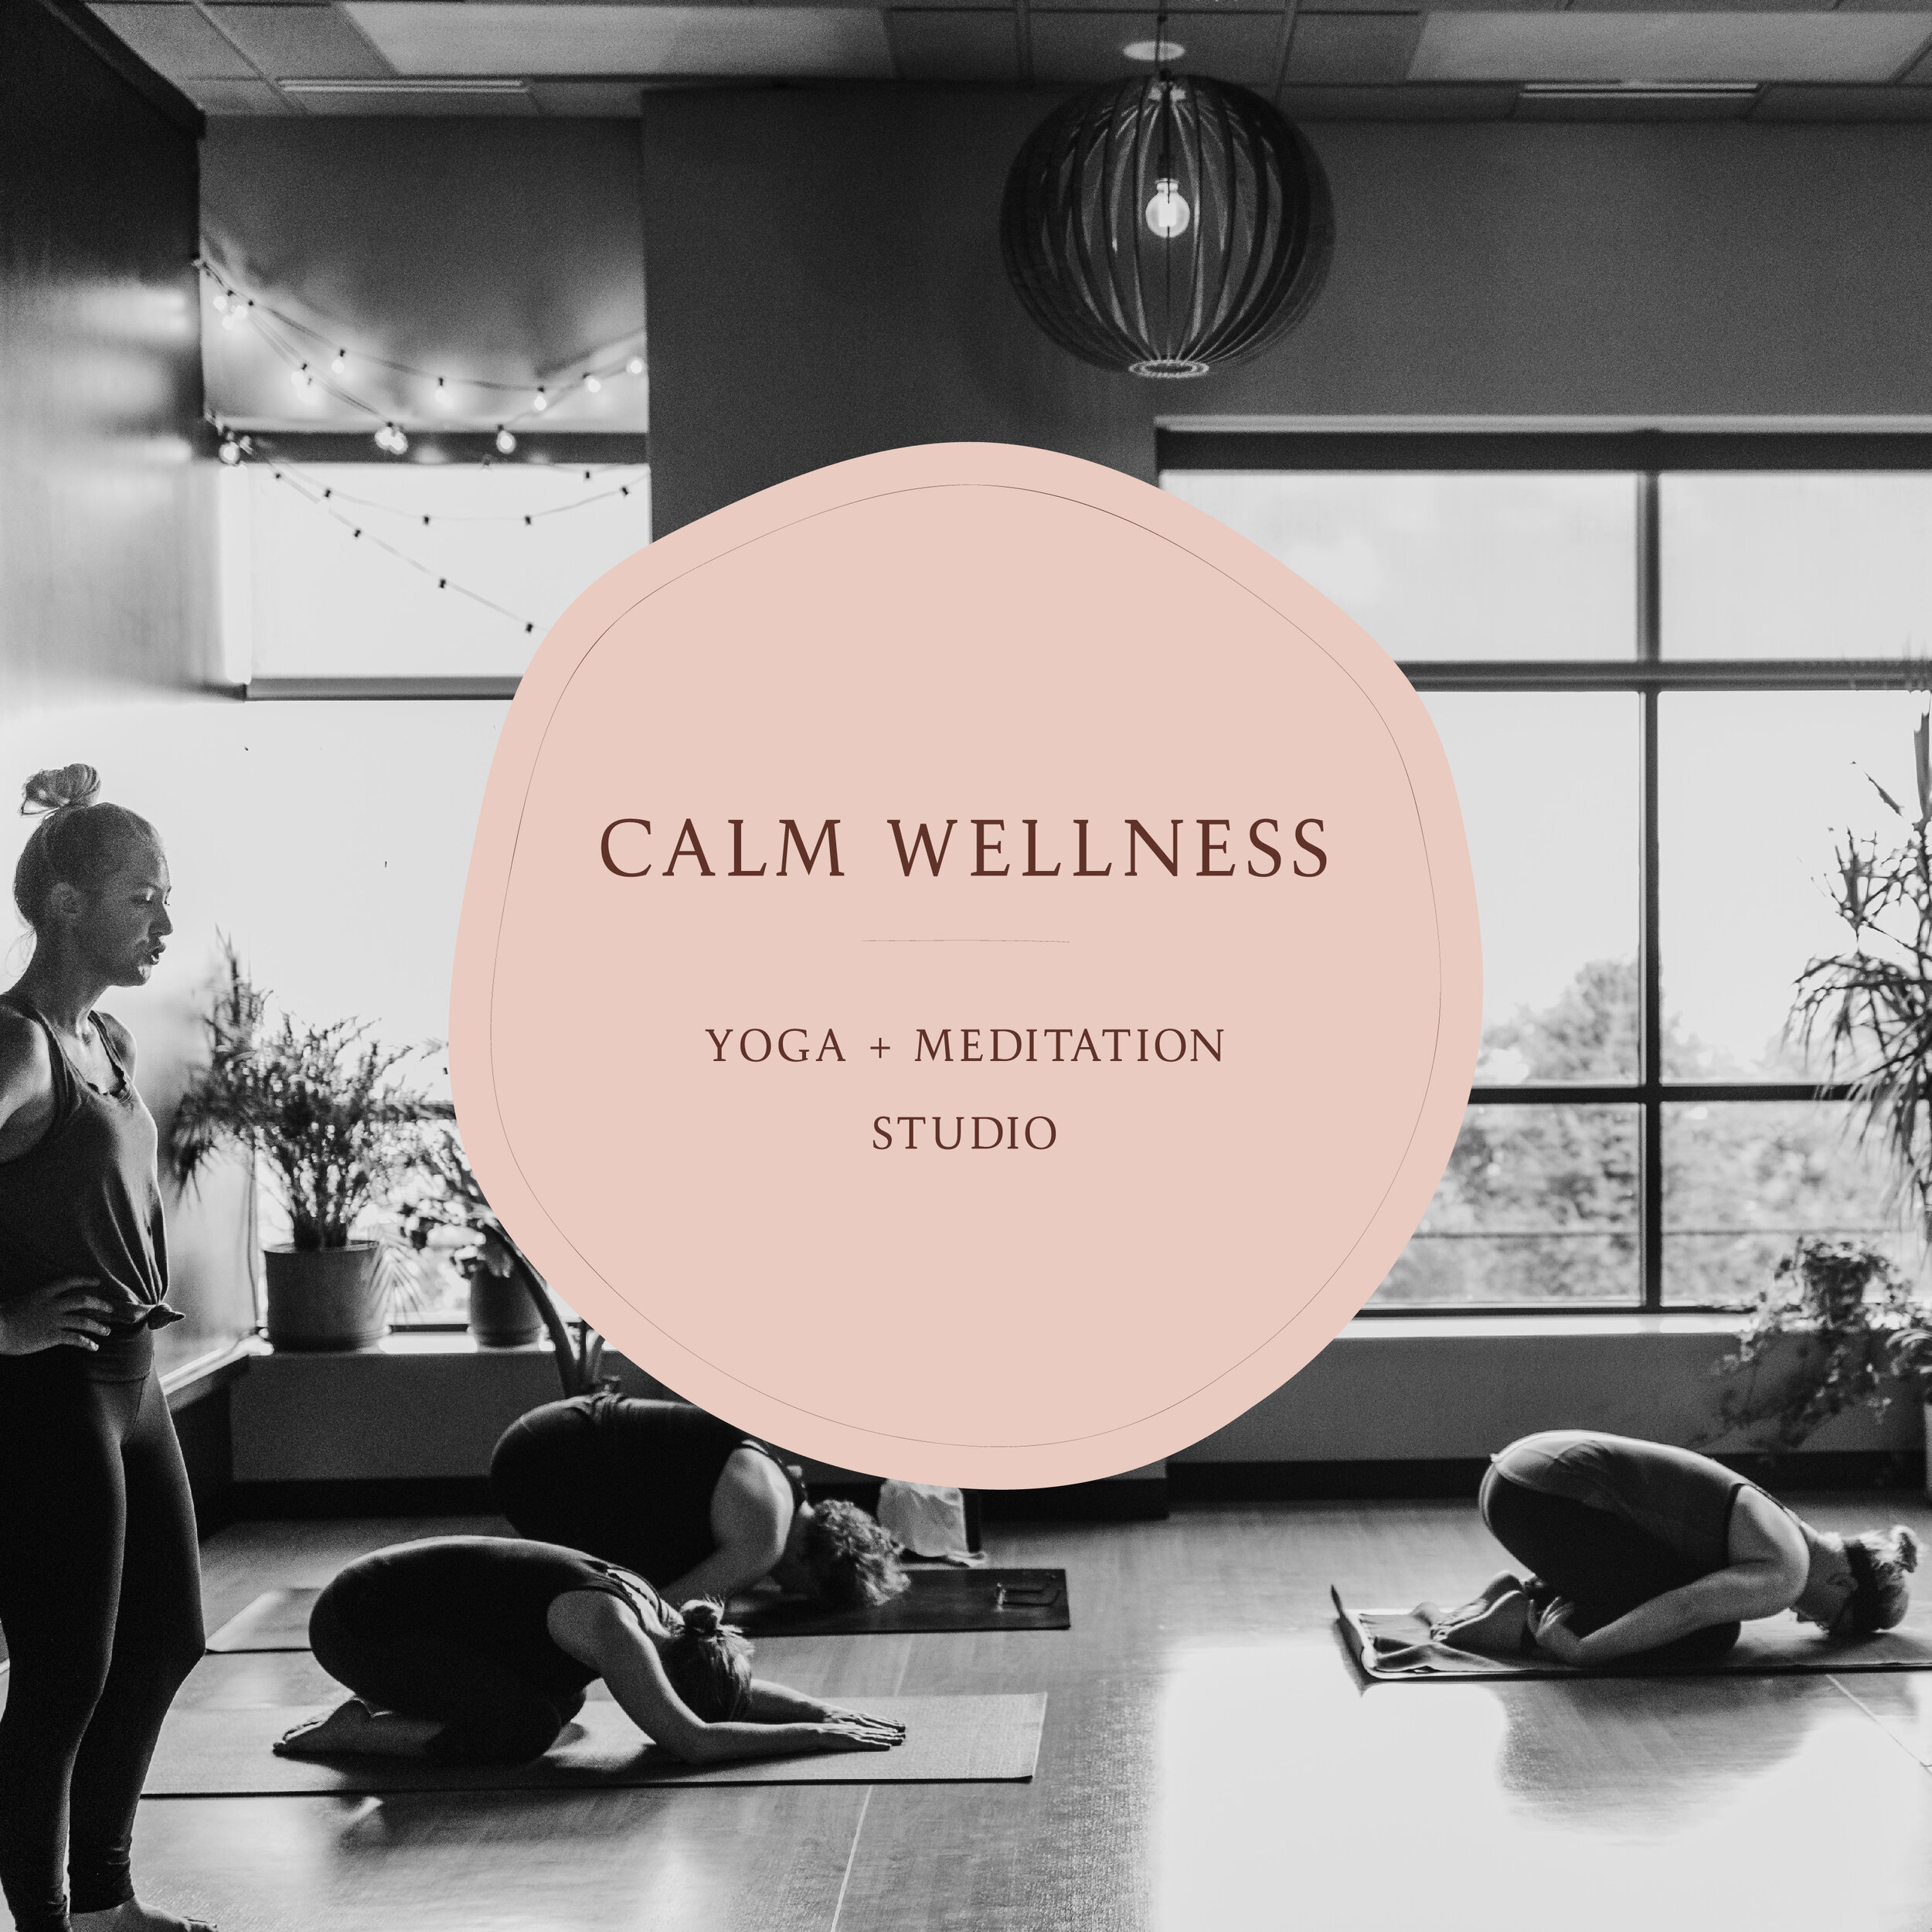 Calm wellness_square-01.jpg